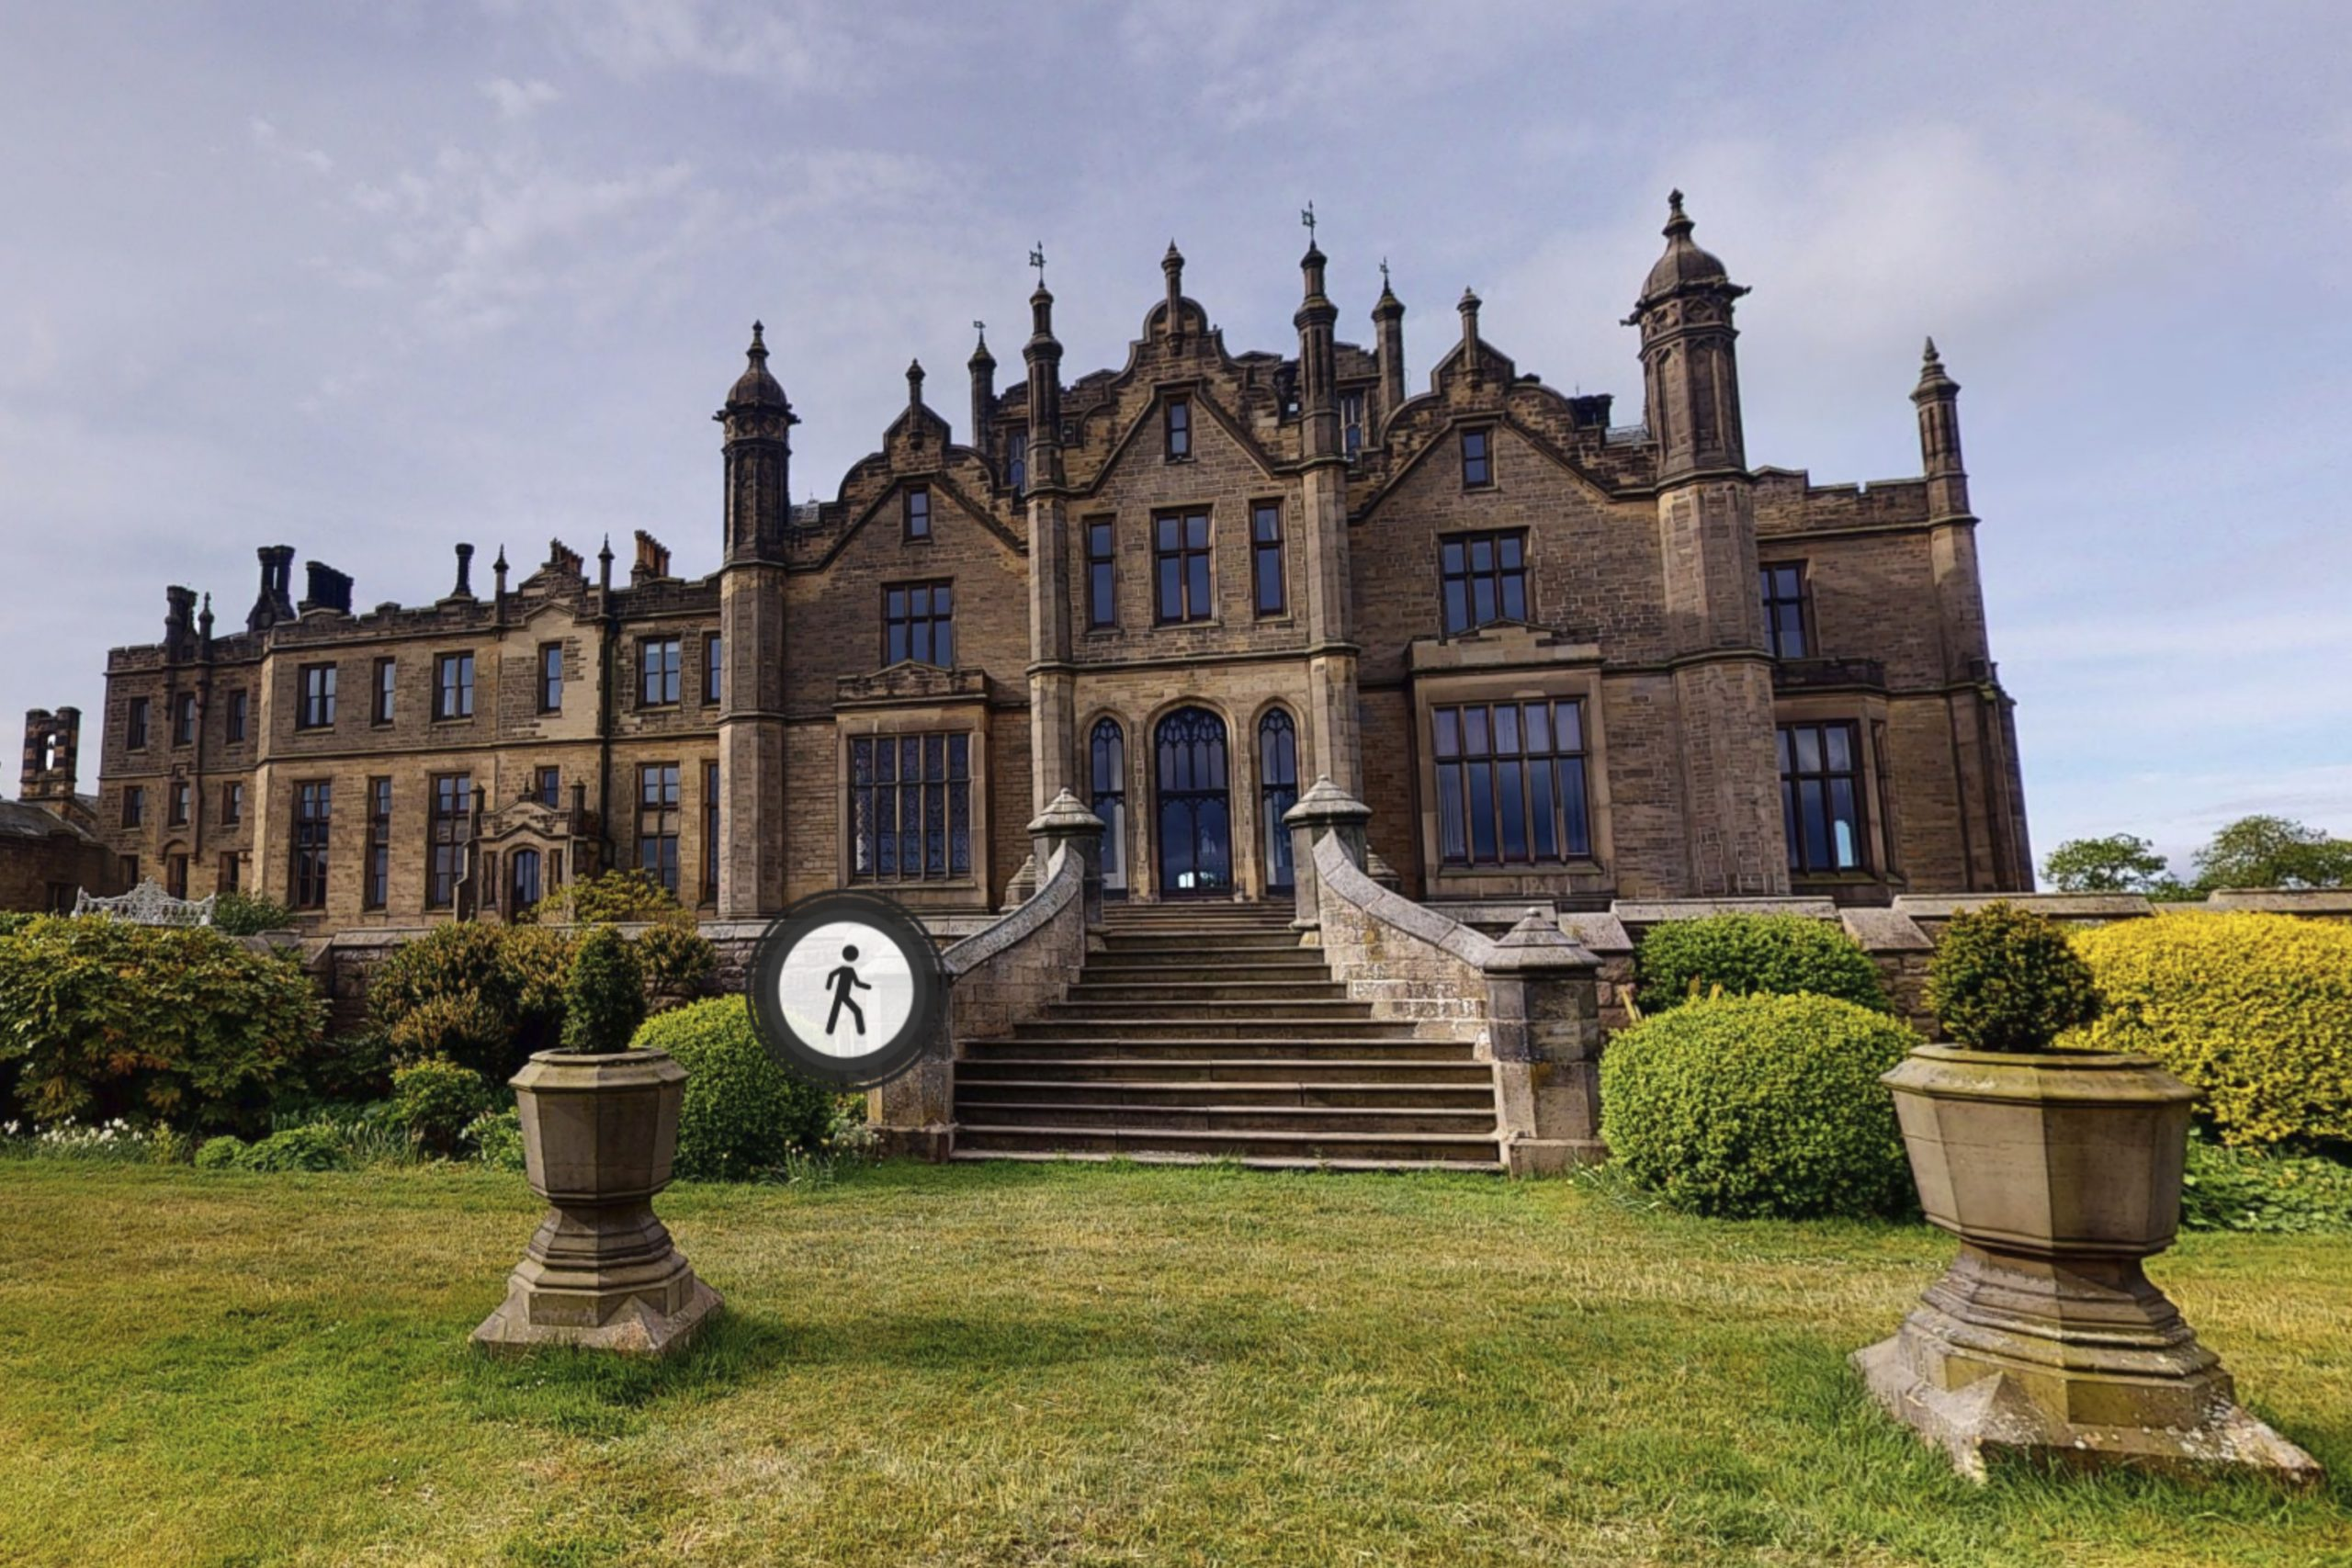 YFFUK Your Favourite Wedding PHotography Allerton Castle 3d tour rear view of the castle and steps